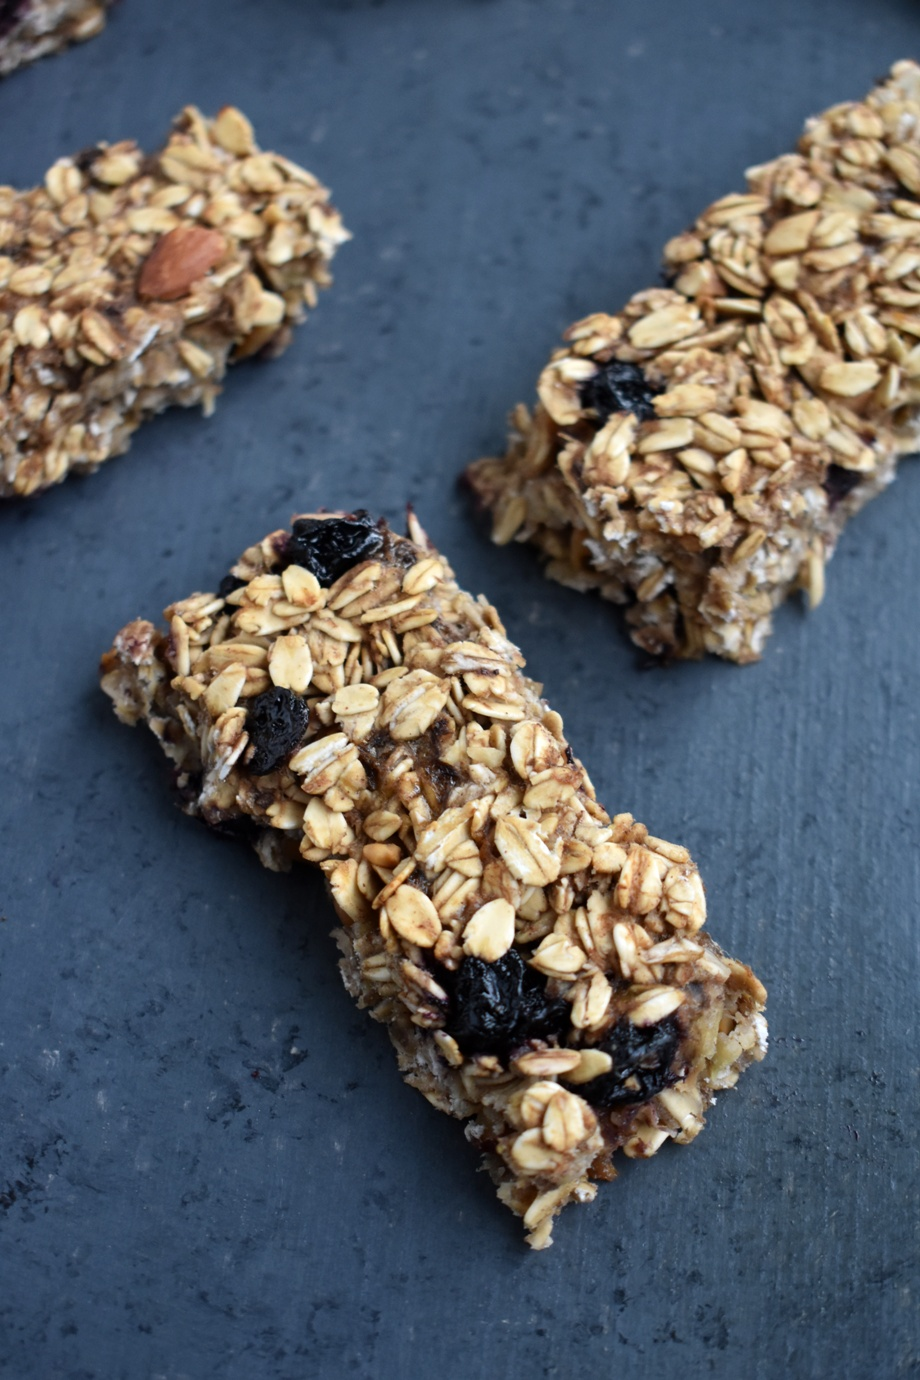 Easy Banana Granola Bars have zero added sugar and are loaded with fiber, whole-grains and protein for a healthy snack that kids and adults will love! www.nutritionistreviews.com #bananas #snack #healthy #granolabars #cleaneating #oats